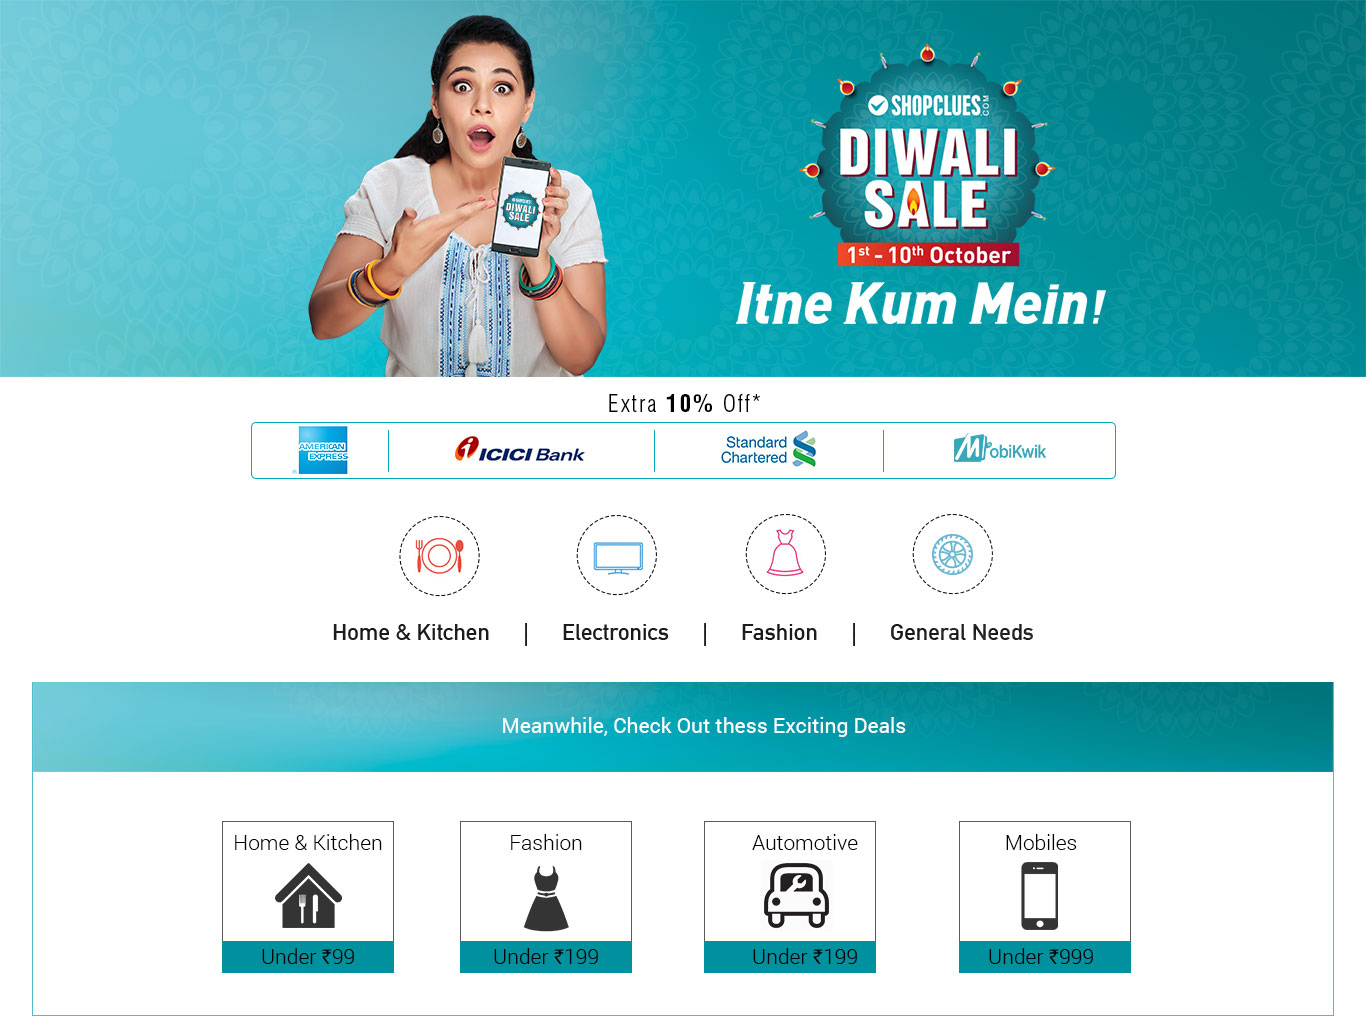 ShopClues Diwali Sale | 1st to 10th October, 2016 @ Shopclues – Others